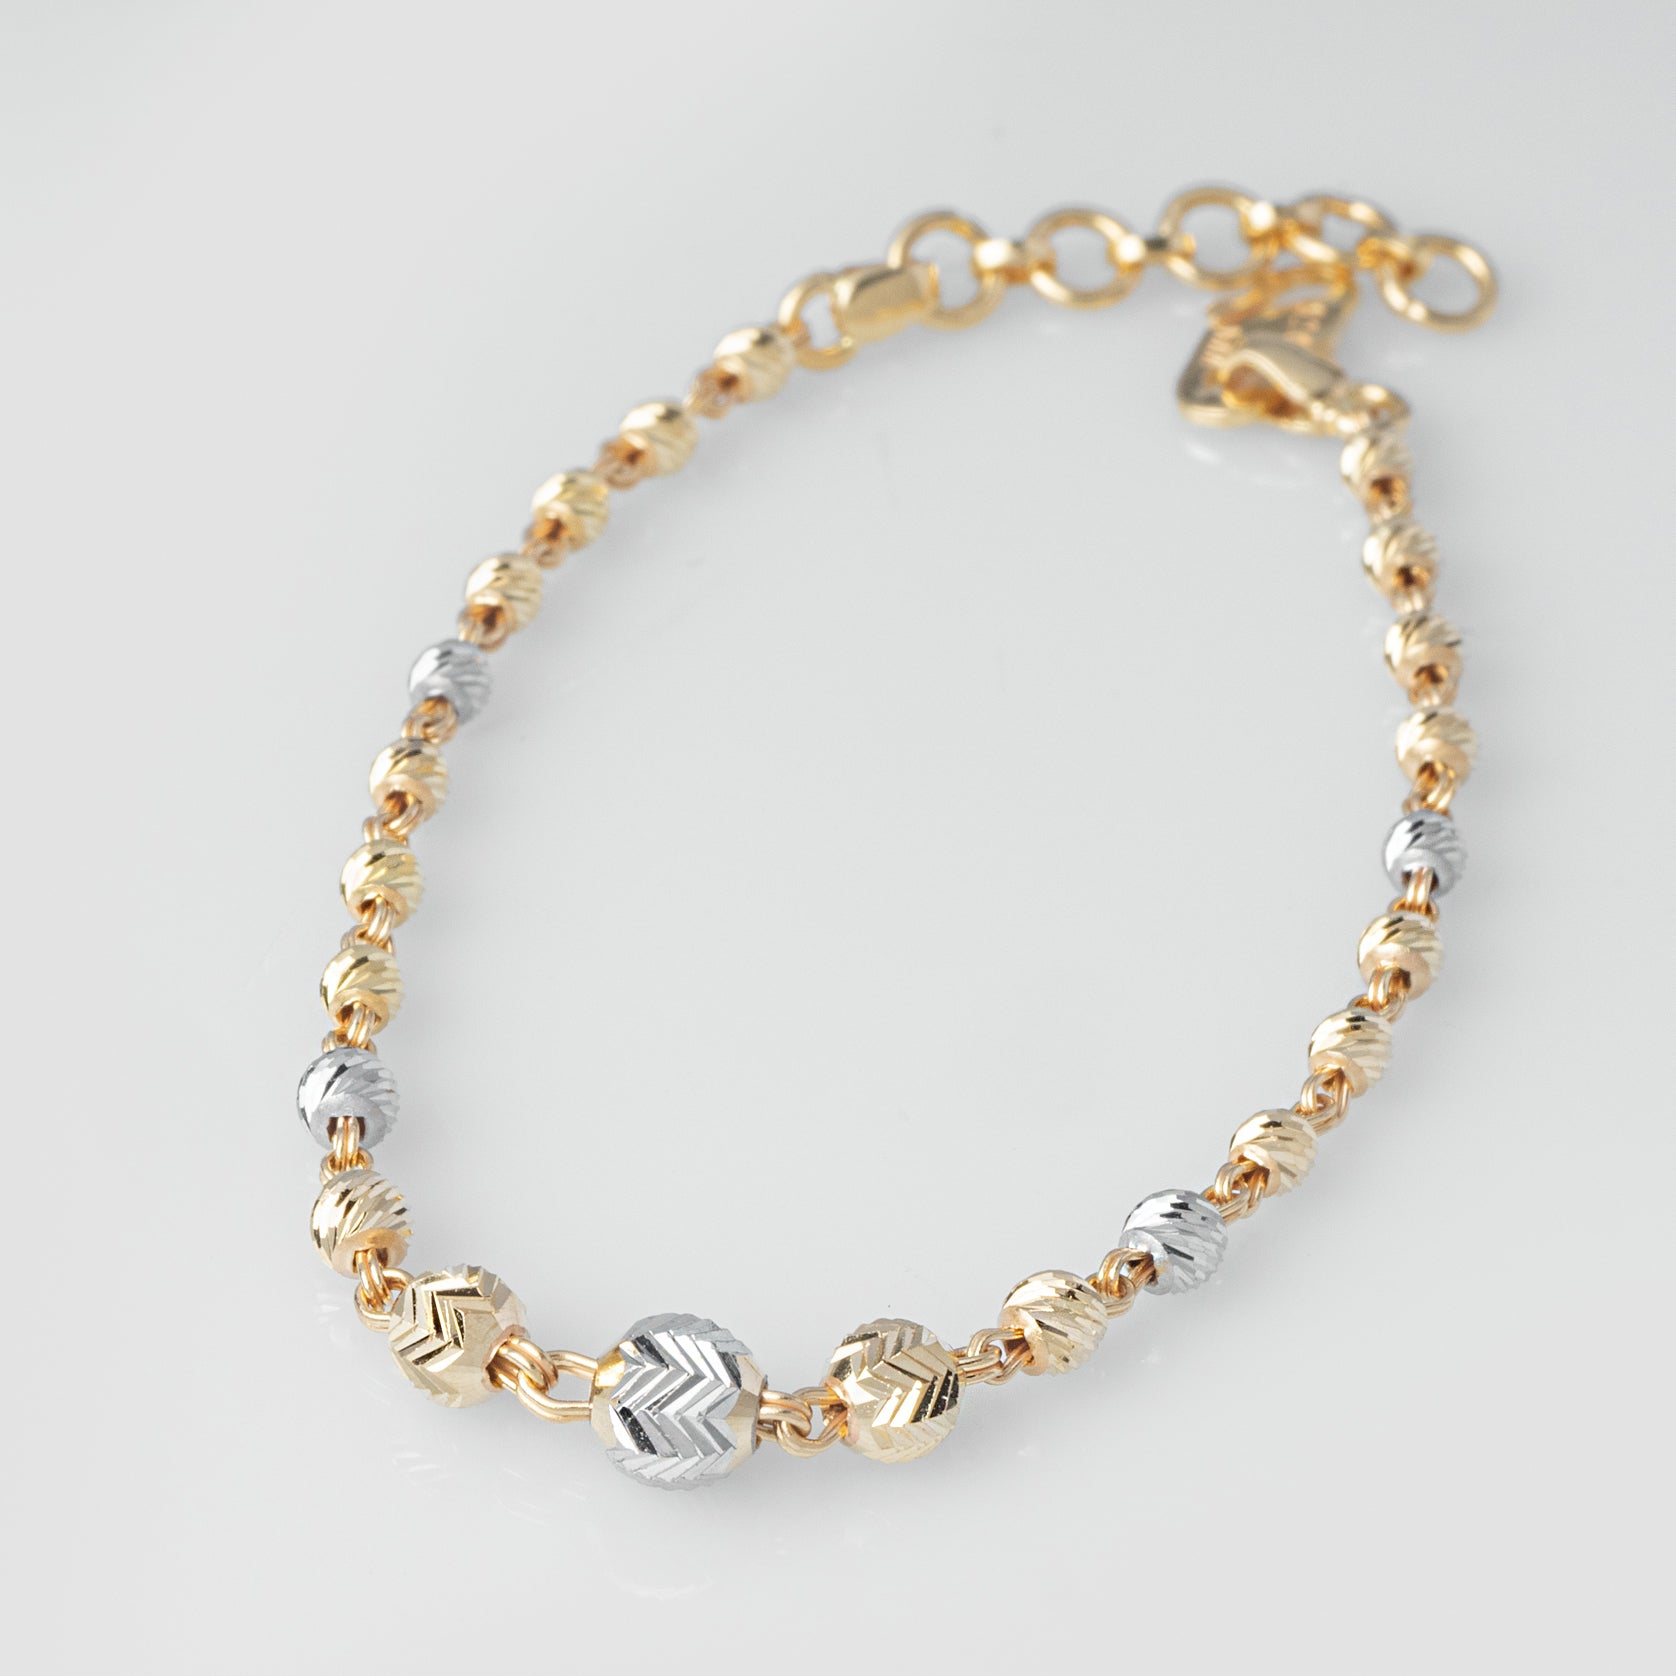 22ct Gold Diamond Cut & Rhodium Design Bracelet (3.9g) LBR-8020